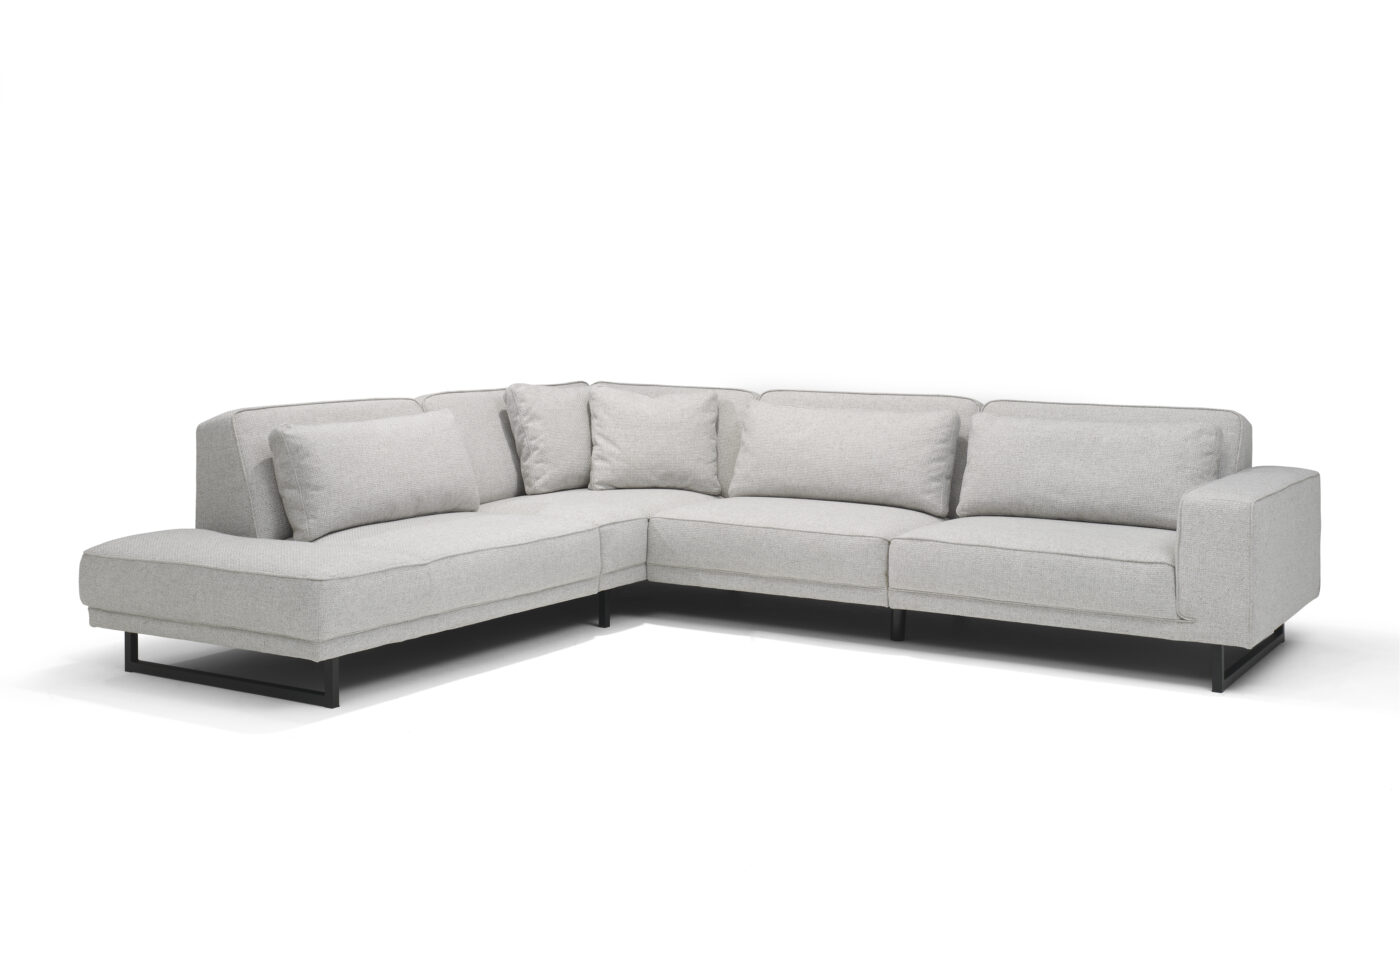 MAJORE 15 HT HXL 15 15 AR in Florence White Grey